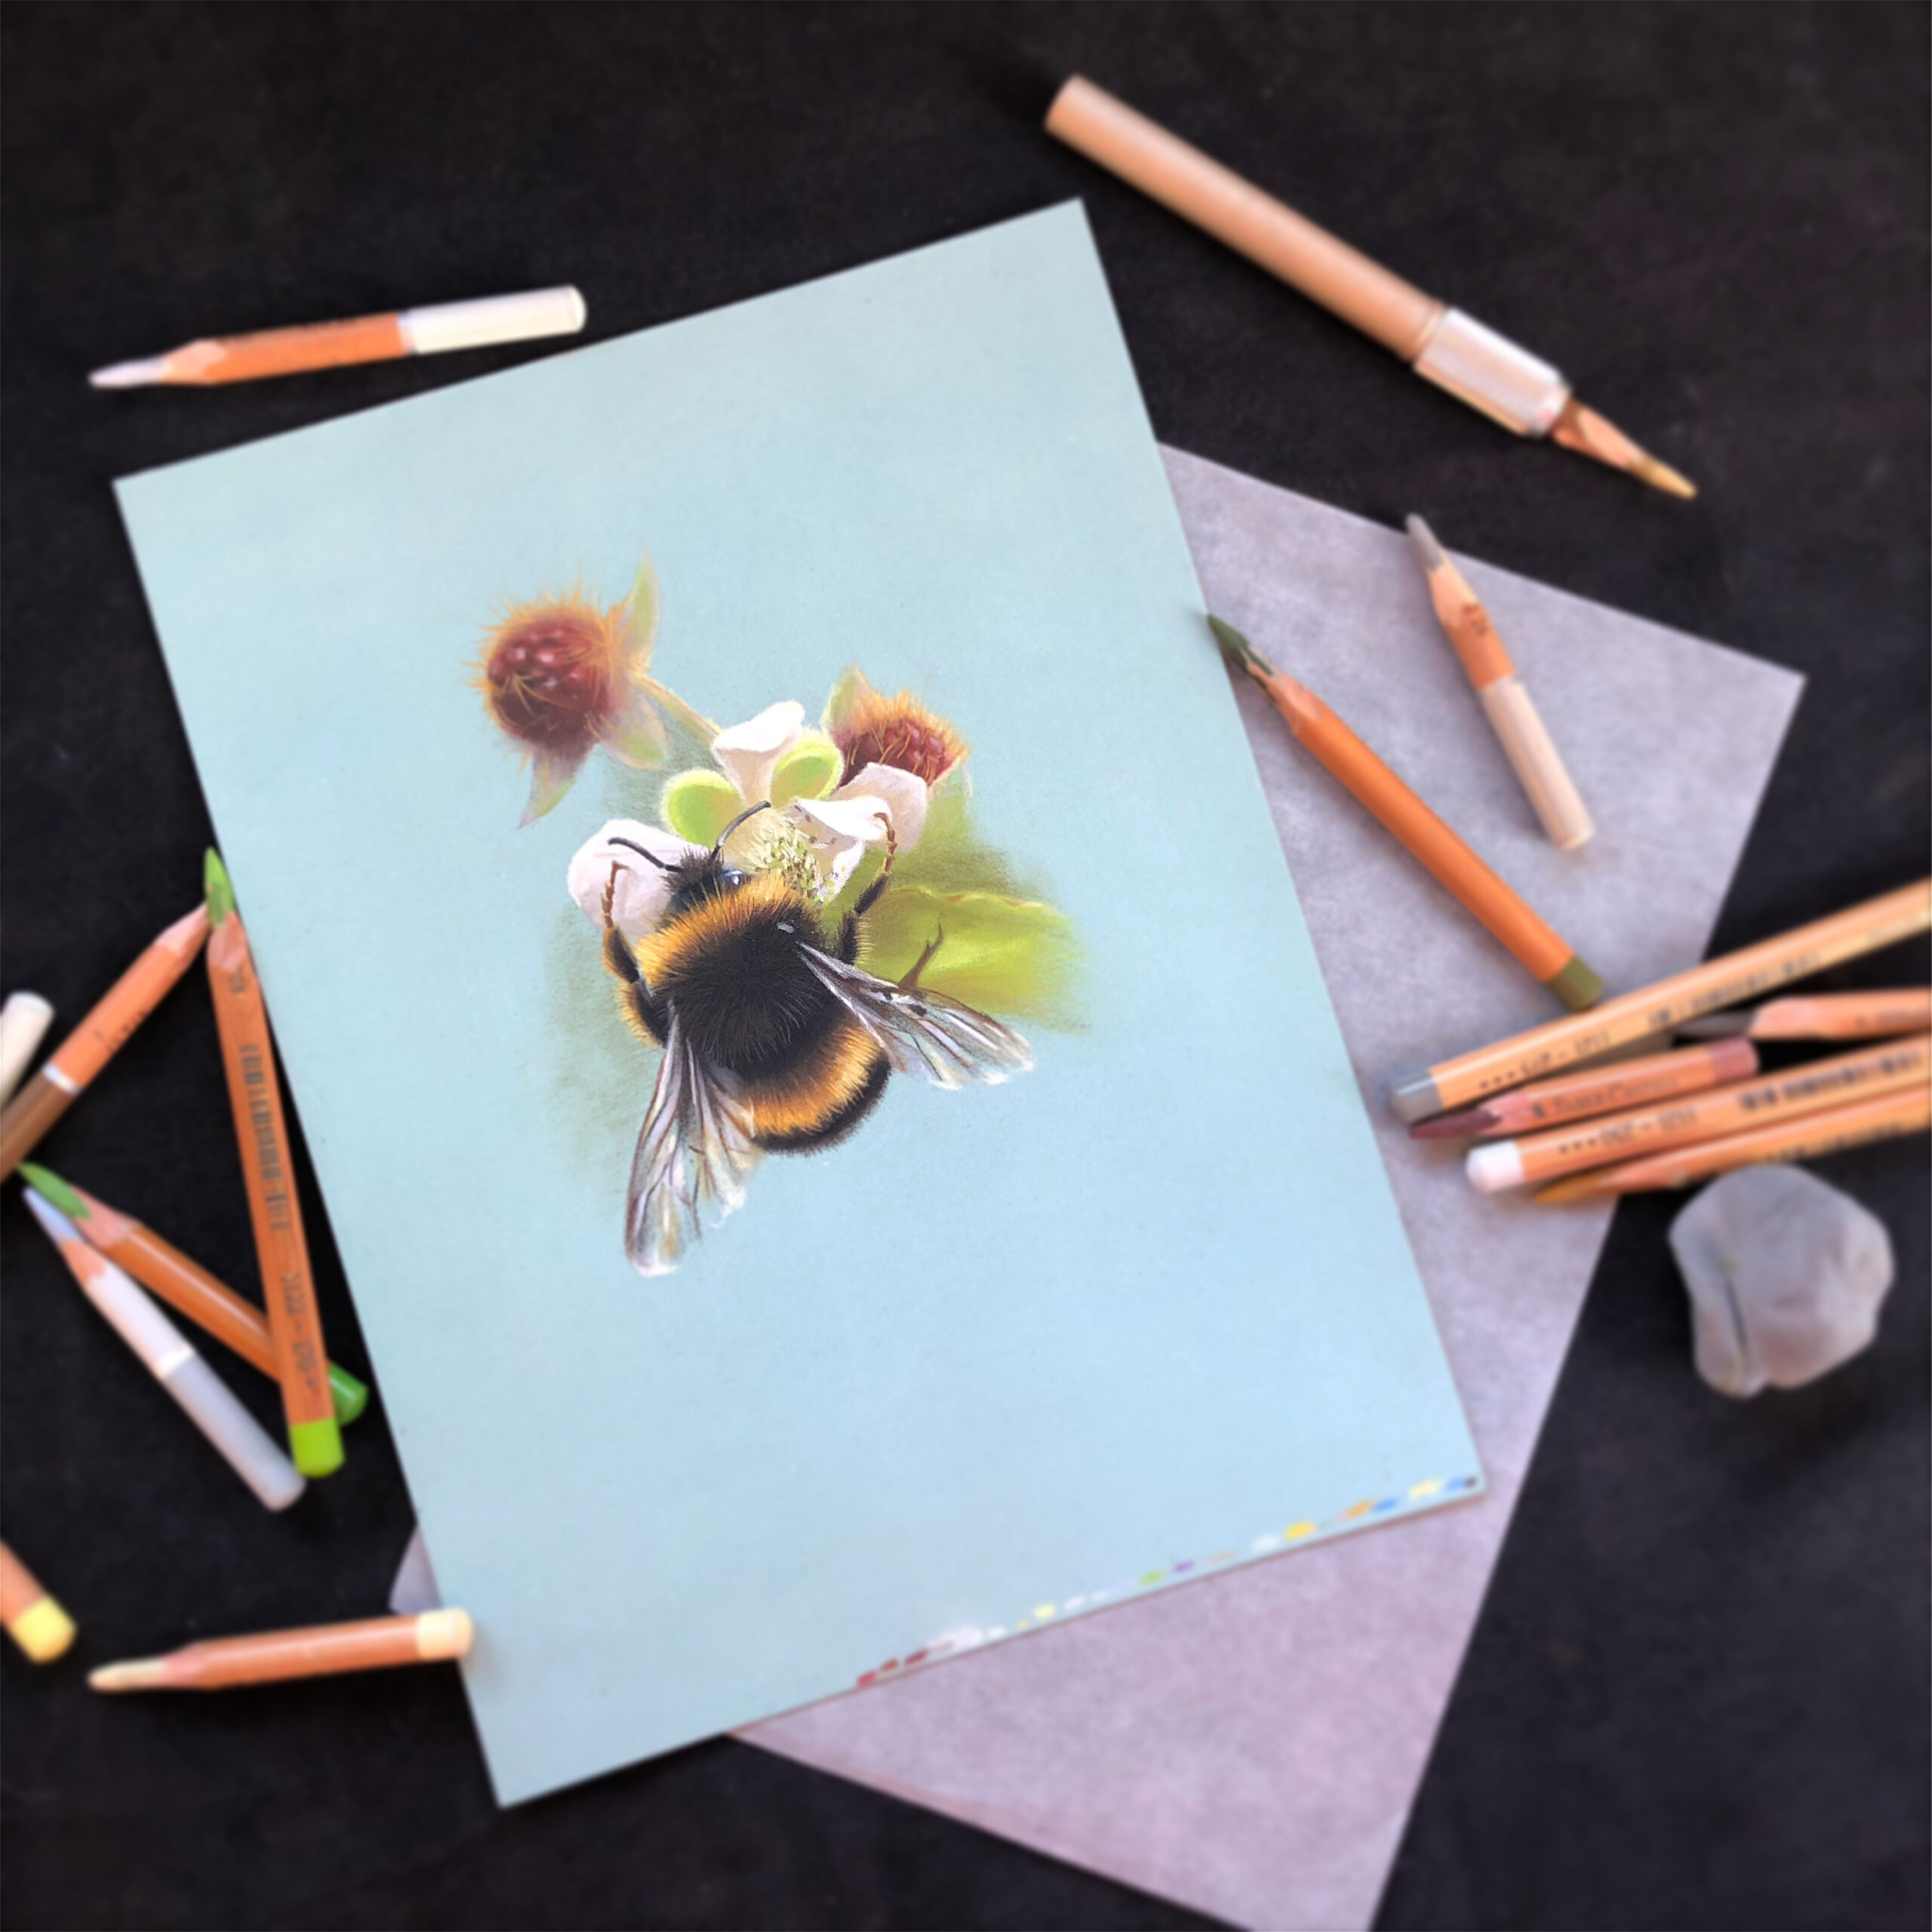 The Best Pastel Paper for Wildlife Drawings